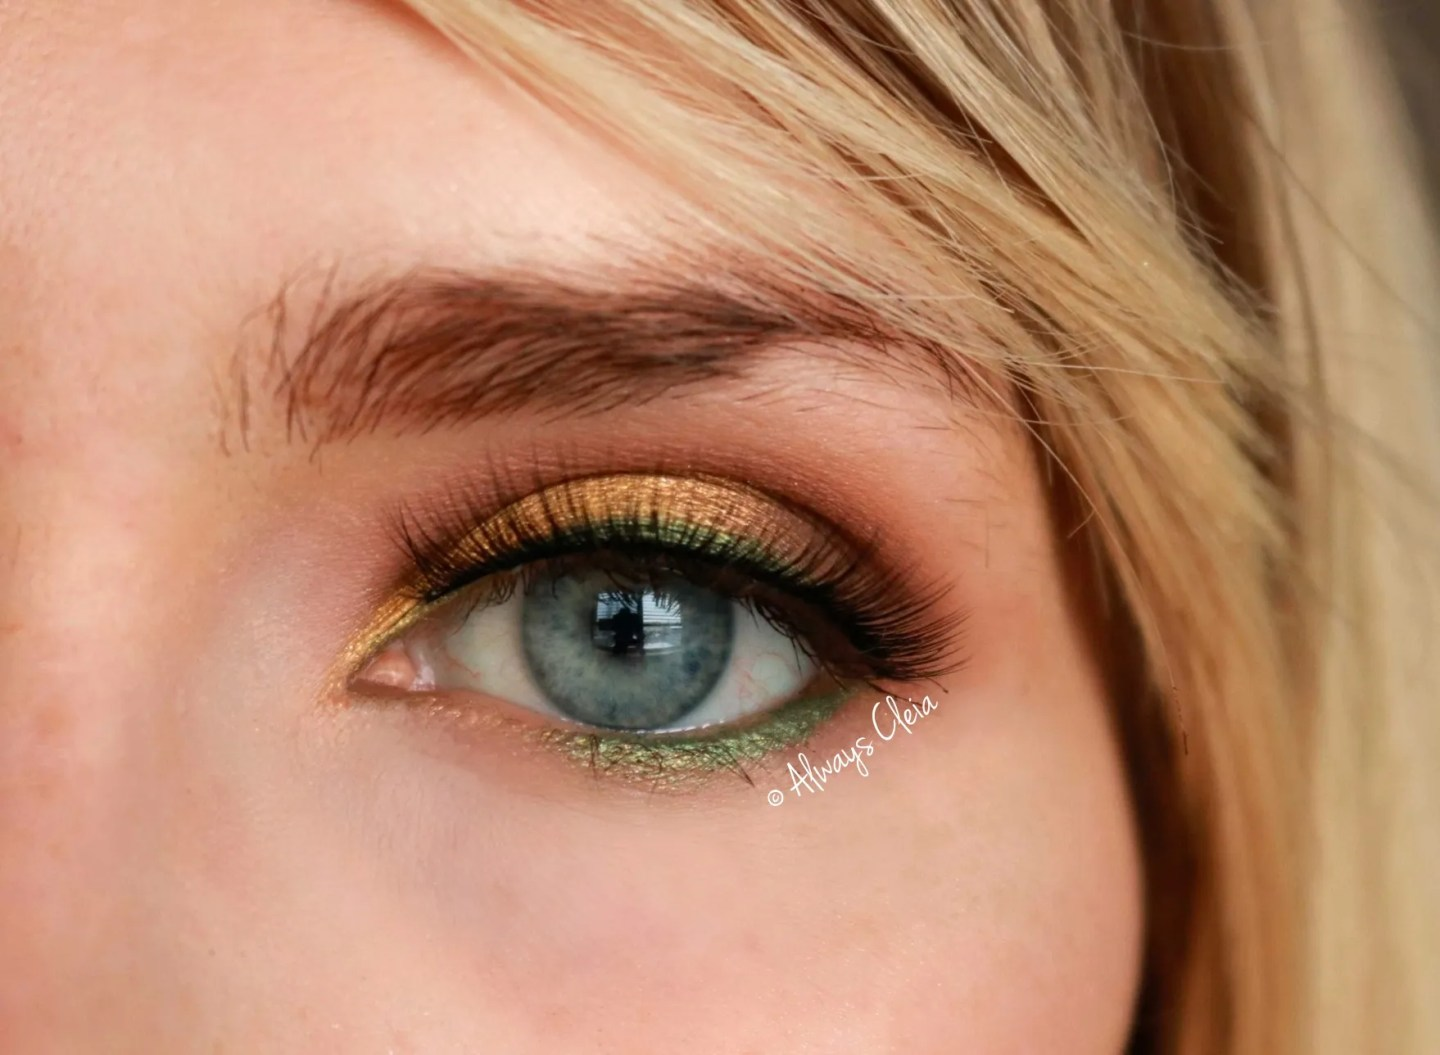 Green & Gold LookGreen & Gold Eyeshadow Look